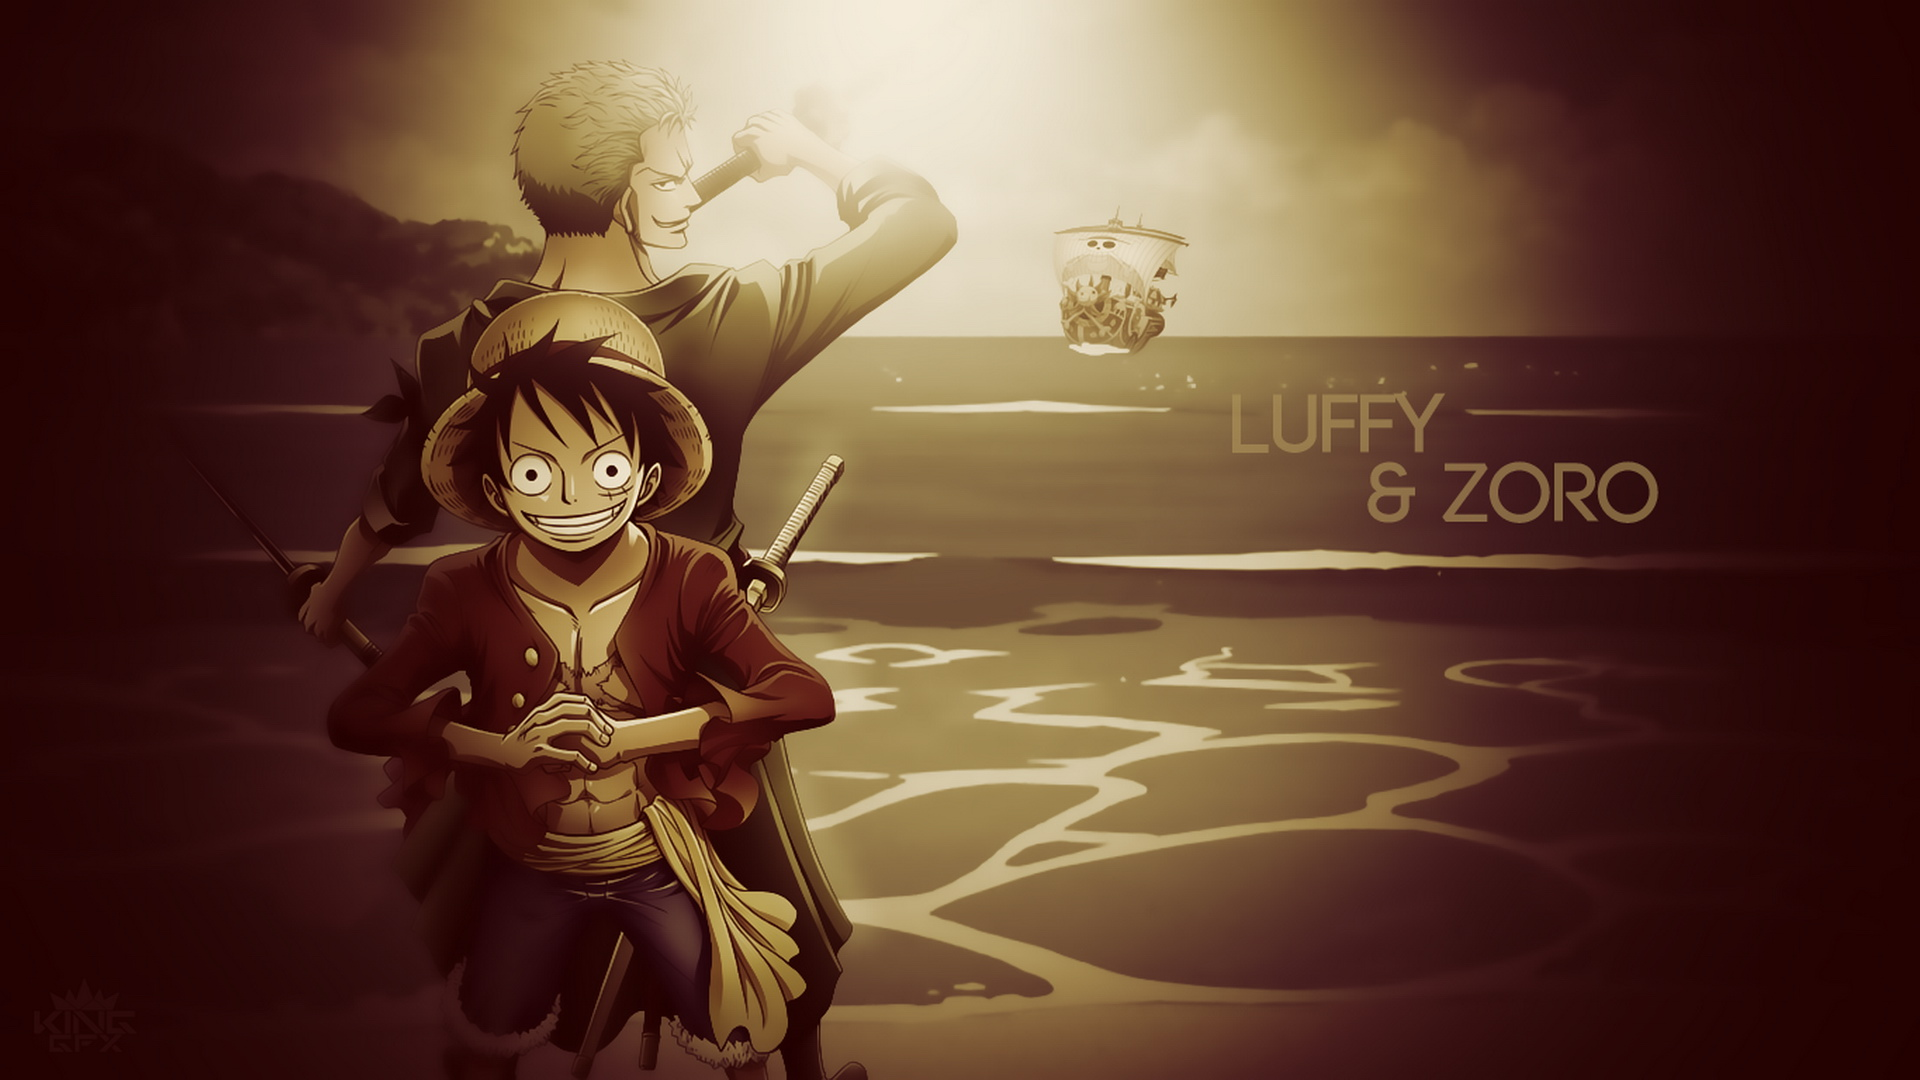 Free Download Luffy One Piece Monkey D Luffy Wallpaper 37712135 1920x1080 For Your Desktop Mobile Tablet Explore 76 Luffy Wallpaper One Piece Wallpaper Luffy One Piece Desktop Wallpaper Monkey D Luffy Wallpapers